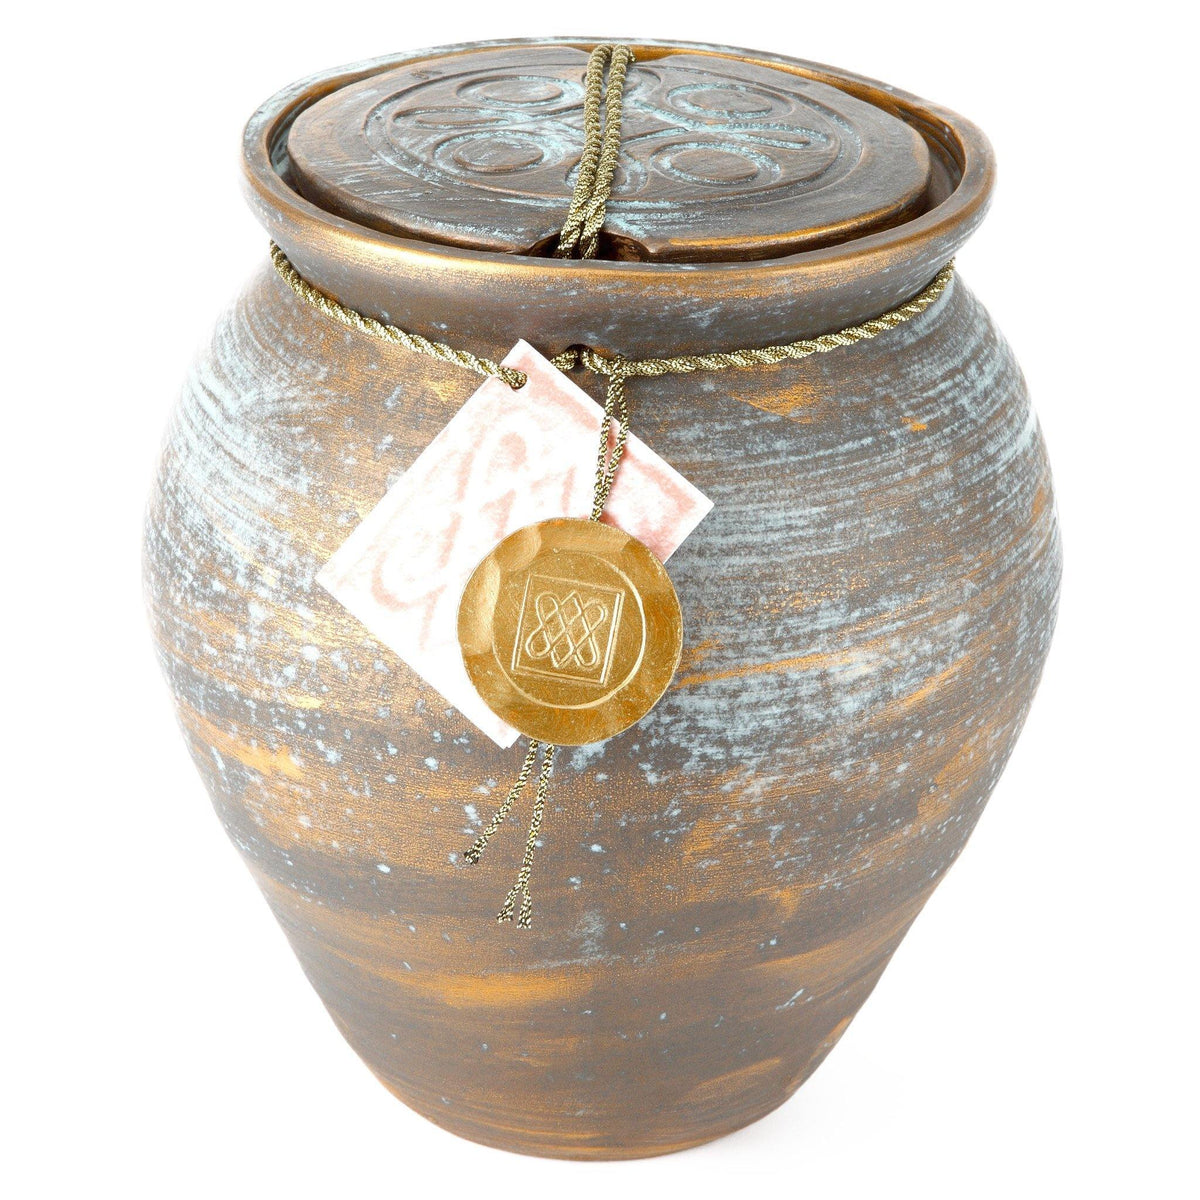 Roman Treasure Clay Cremation Ashes Urn - Urns UK